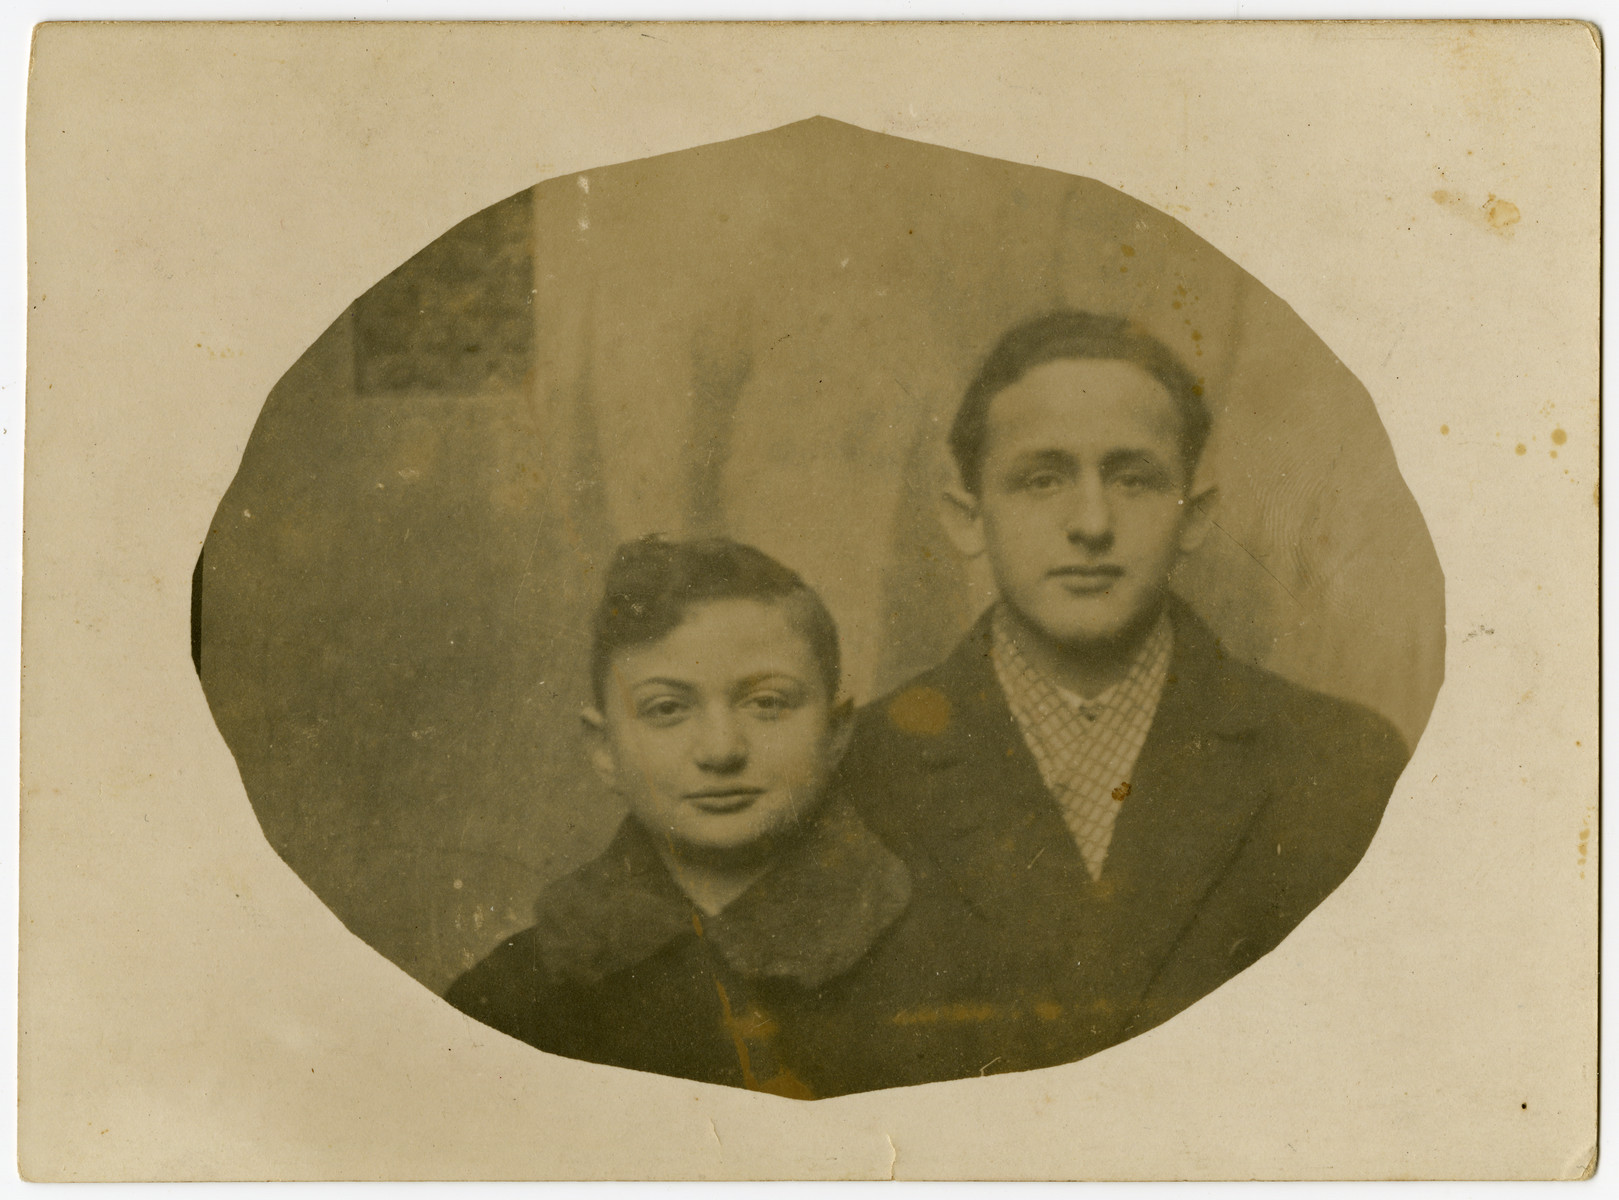 Close-up portrait of Dawid Szymin (Chim) and his cousin Mendele Segal.